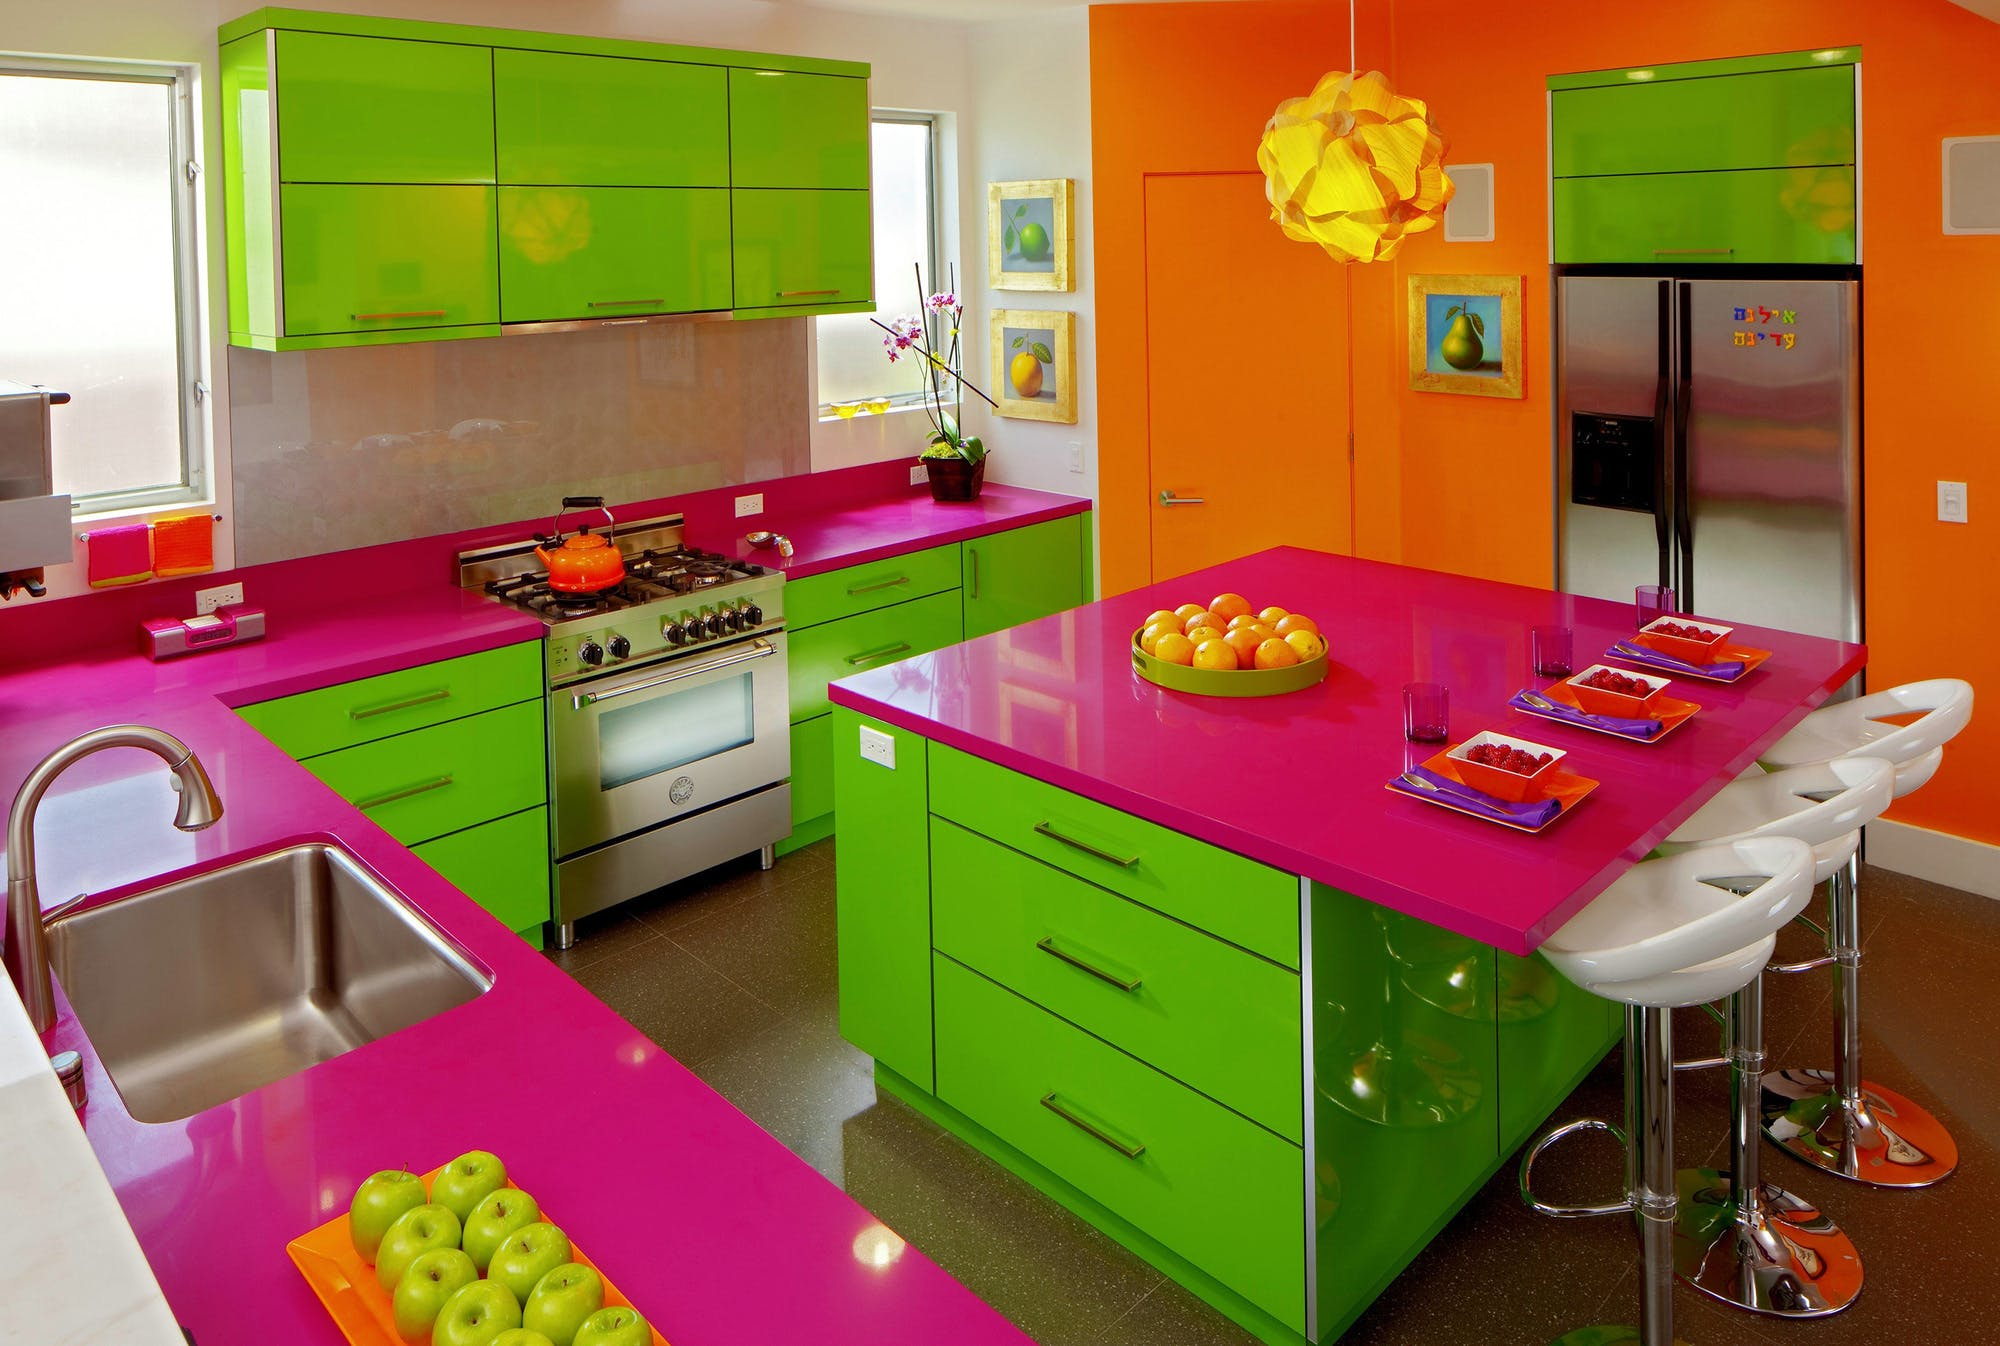 glossy-colors-in-kitchen. 80+ Unusual Kitchen Design Ideas for Small Spaces in 2021